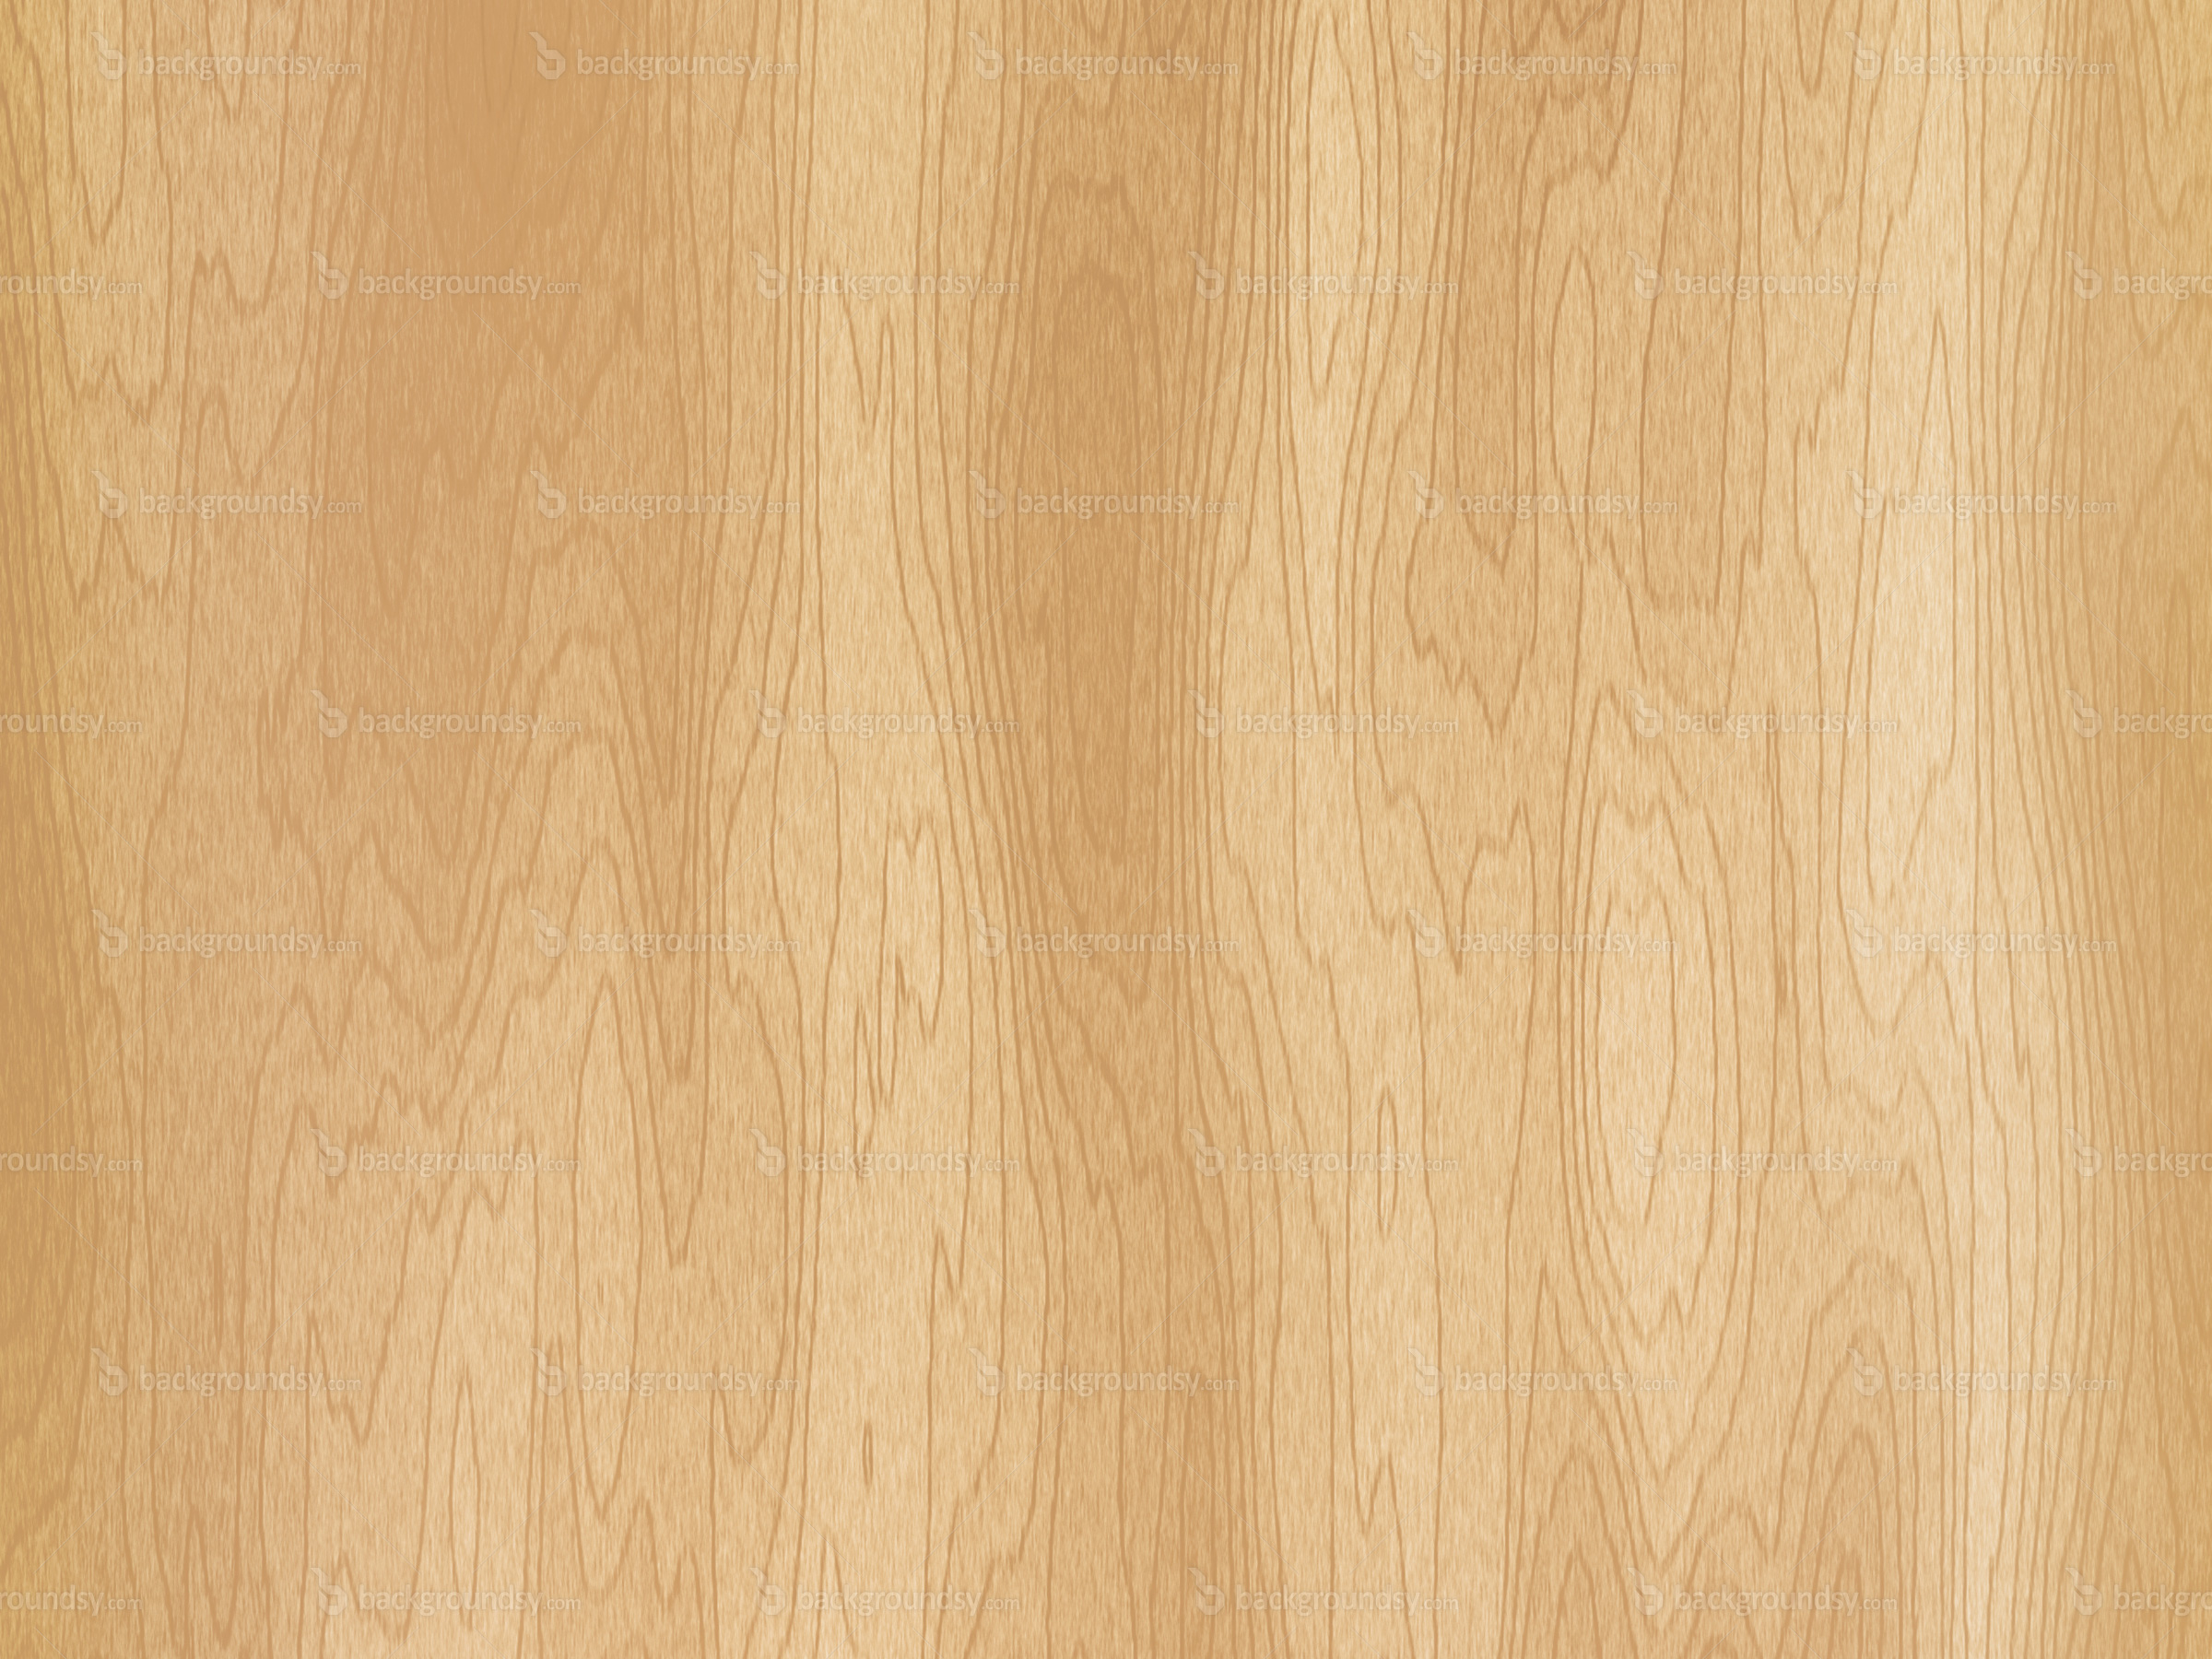 Wood grain background | Backgroundsy.com